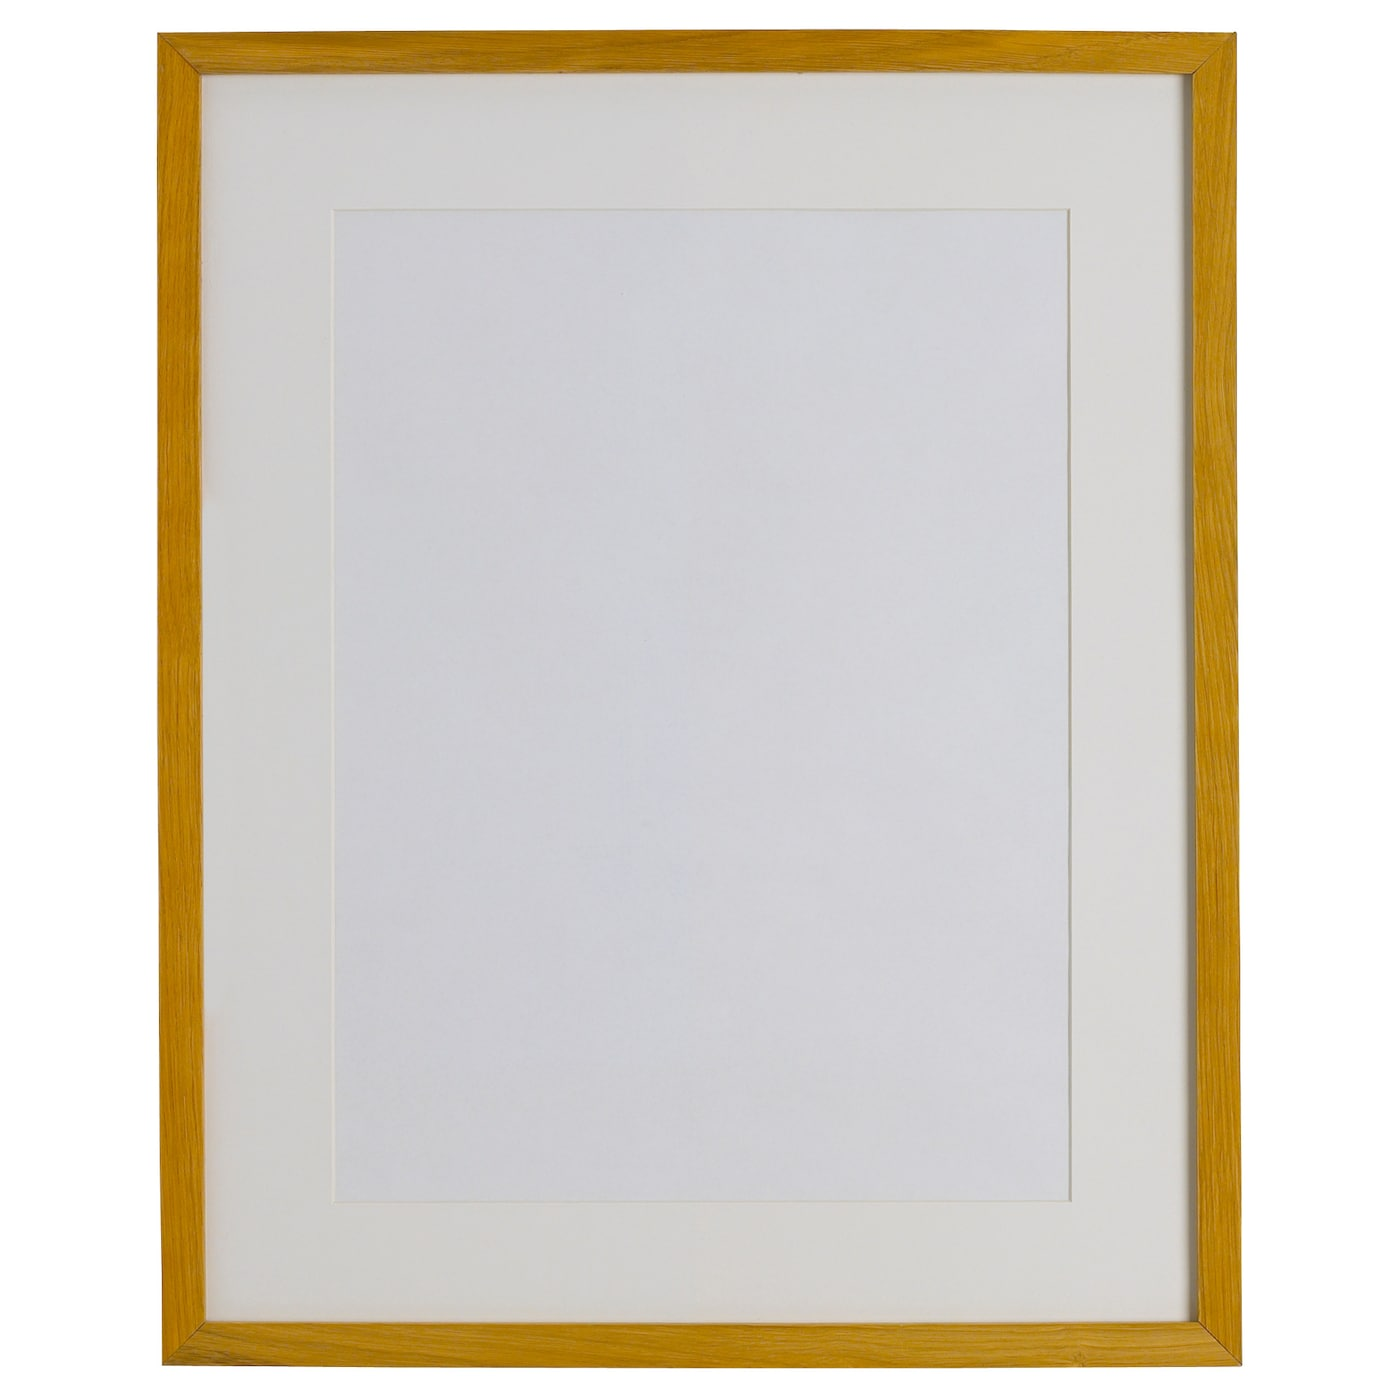 Ribba frame oak effect 40x50 cm ikea for Ikea ribba weiay